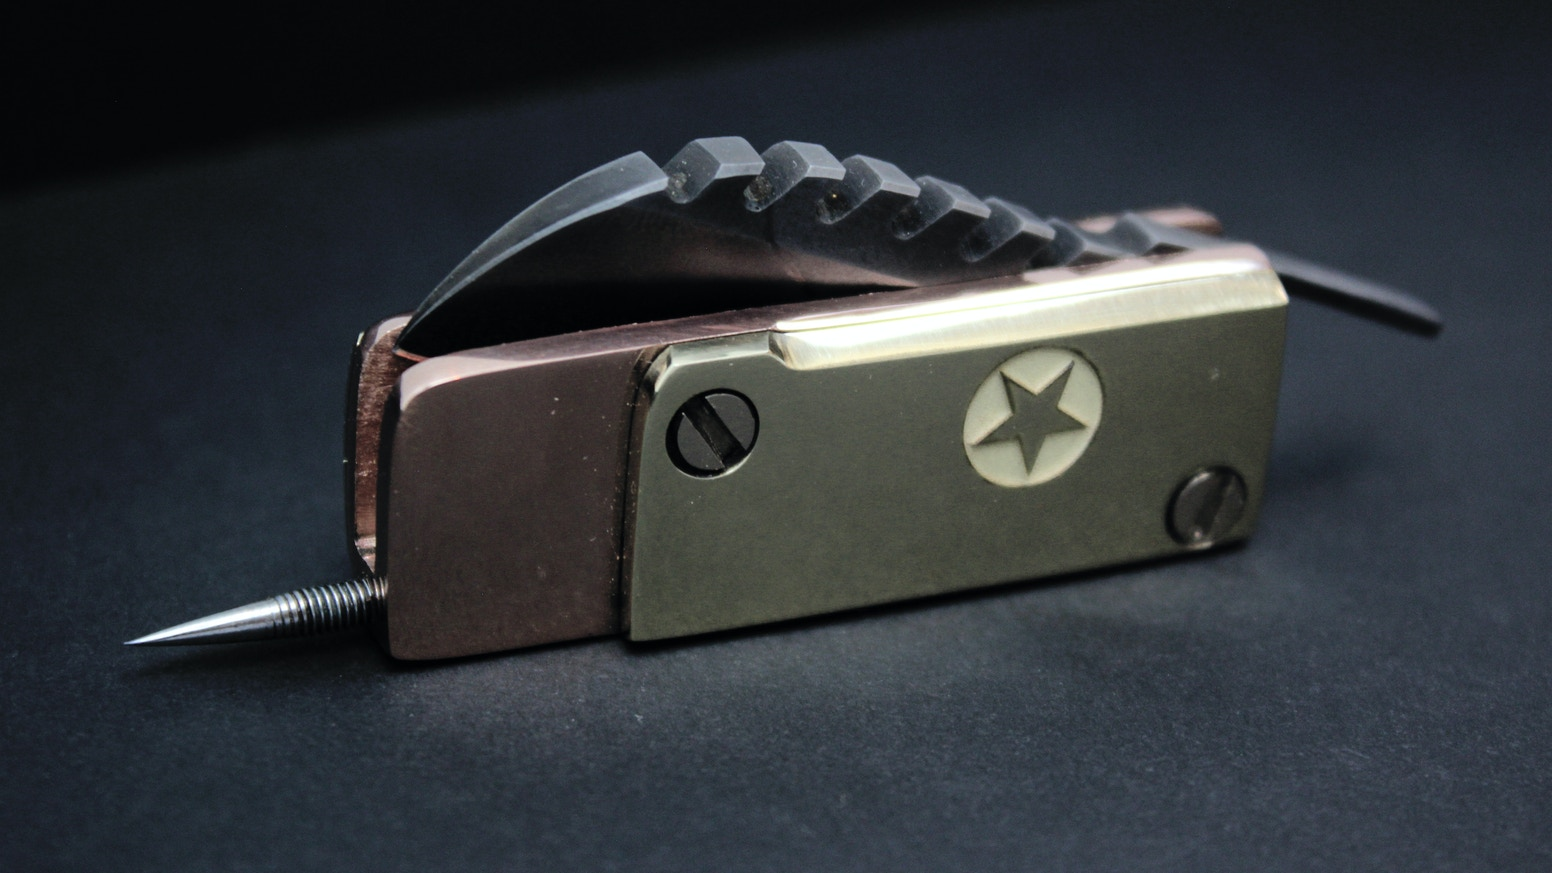 Aesthetics of Exploitation from the Guru of Knife Crafting. Forged, Compact and Legal -  with a Taste of Freedom.